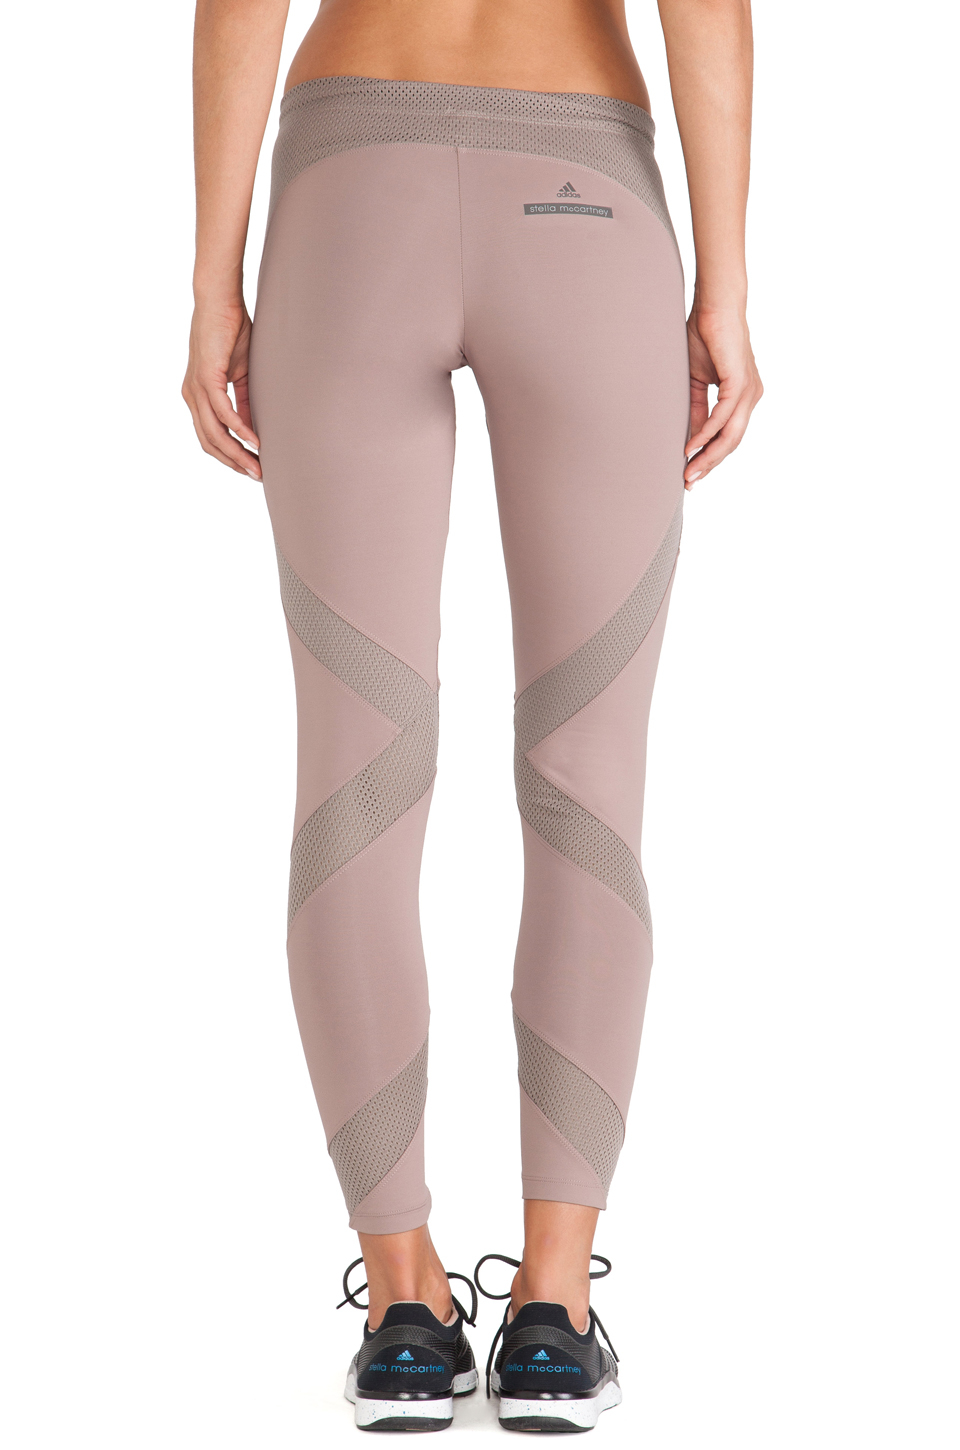 4d84d24ee810a Believe This Tights; Lyst - Adidas By Stella Mccartney Techfit Running  Tights in Pink ...